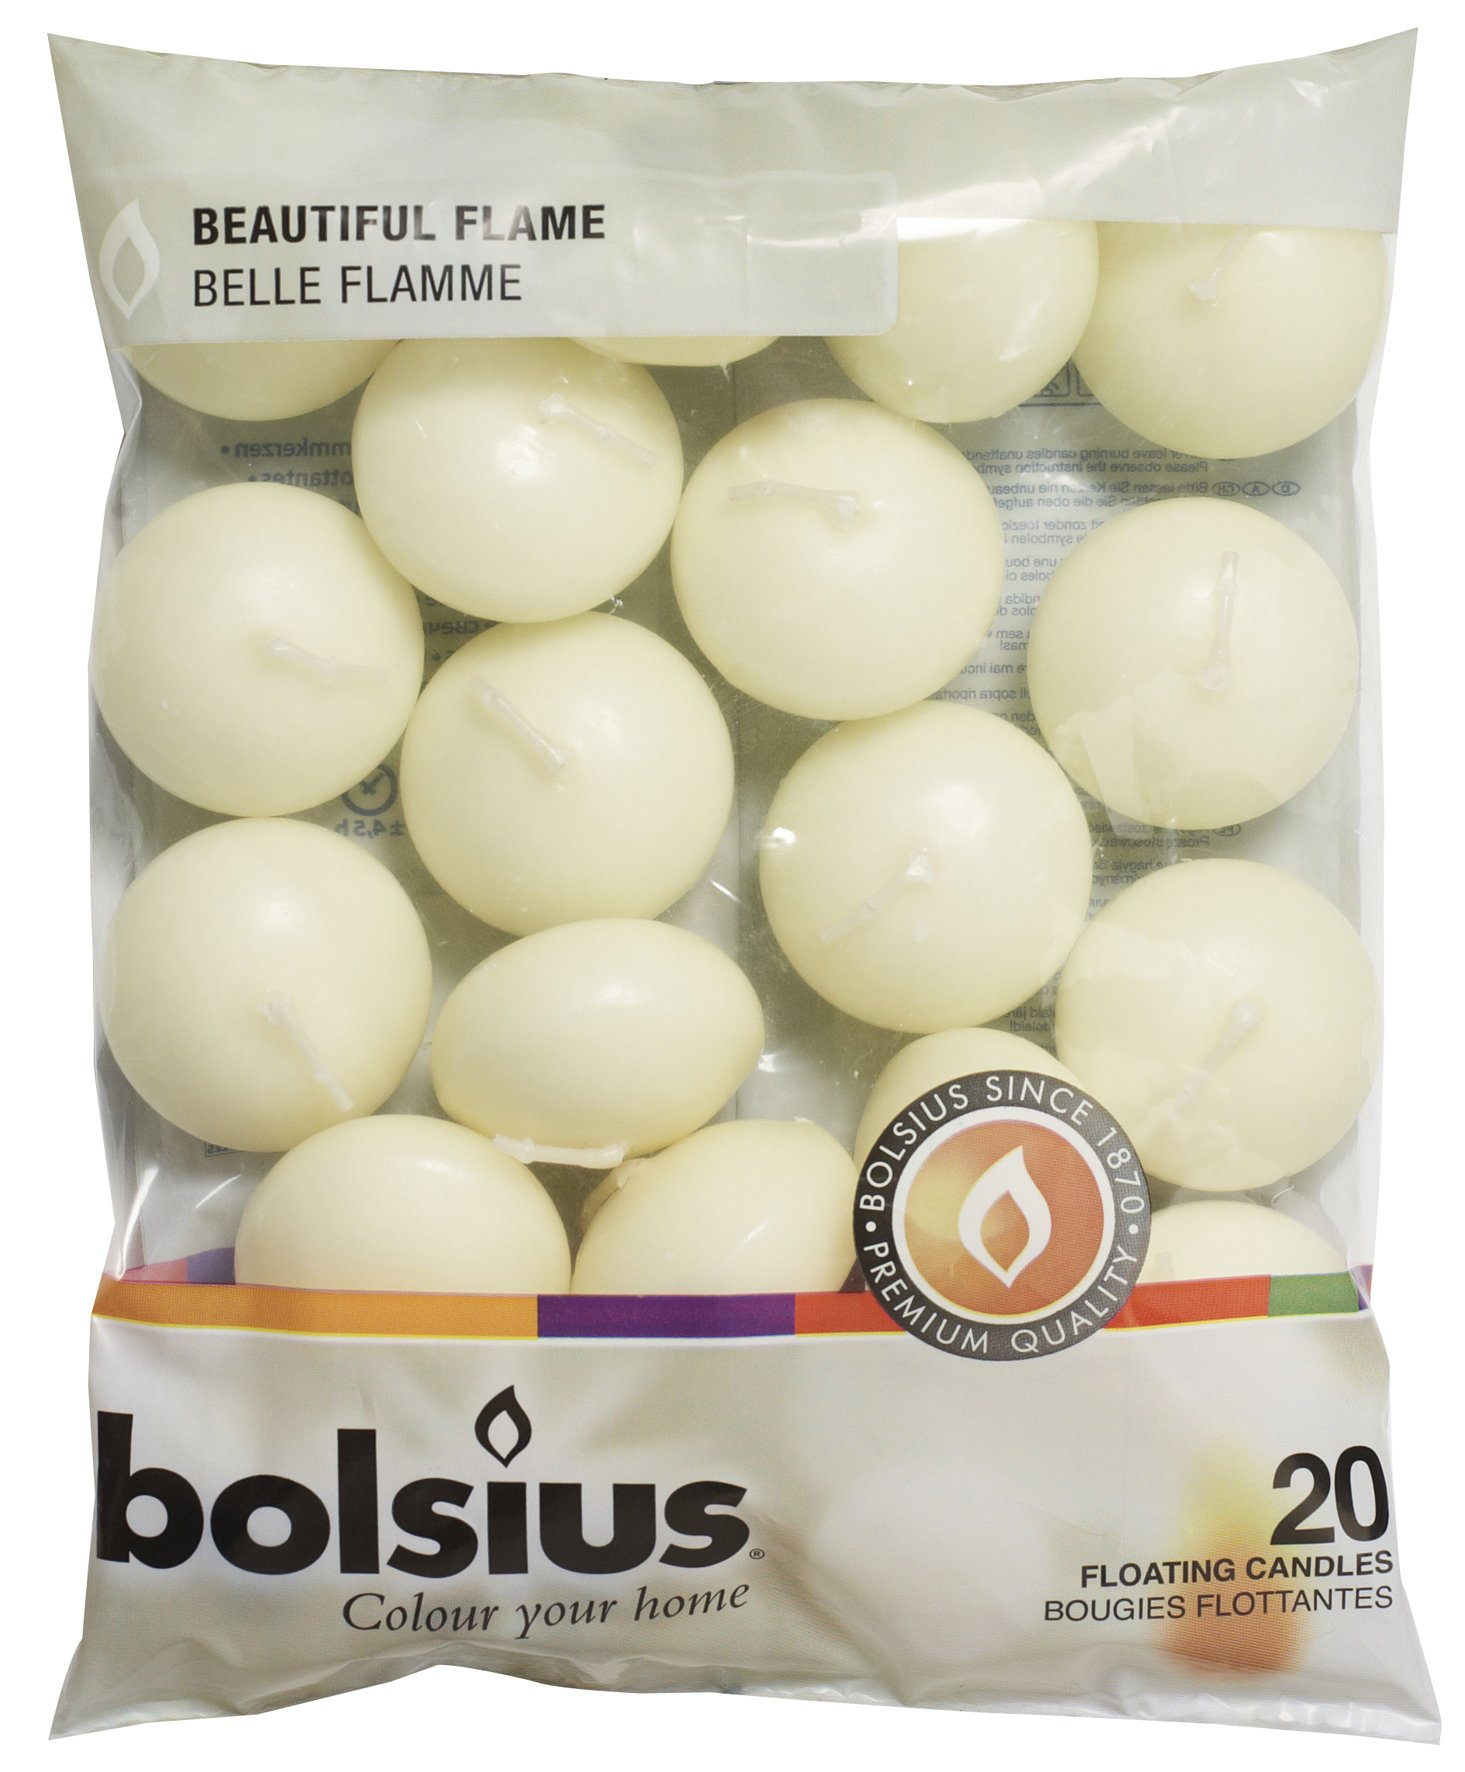 Bolsius Unscented Floating Candles – Set of 40 Ivory Floating Candles 1.3/4 inch – Elegant Burning Candles – Candles Nice Smooth Flame – Party Accessories by bolsius candles